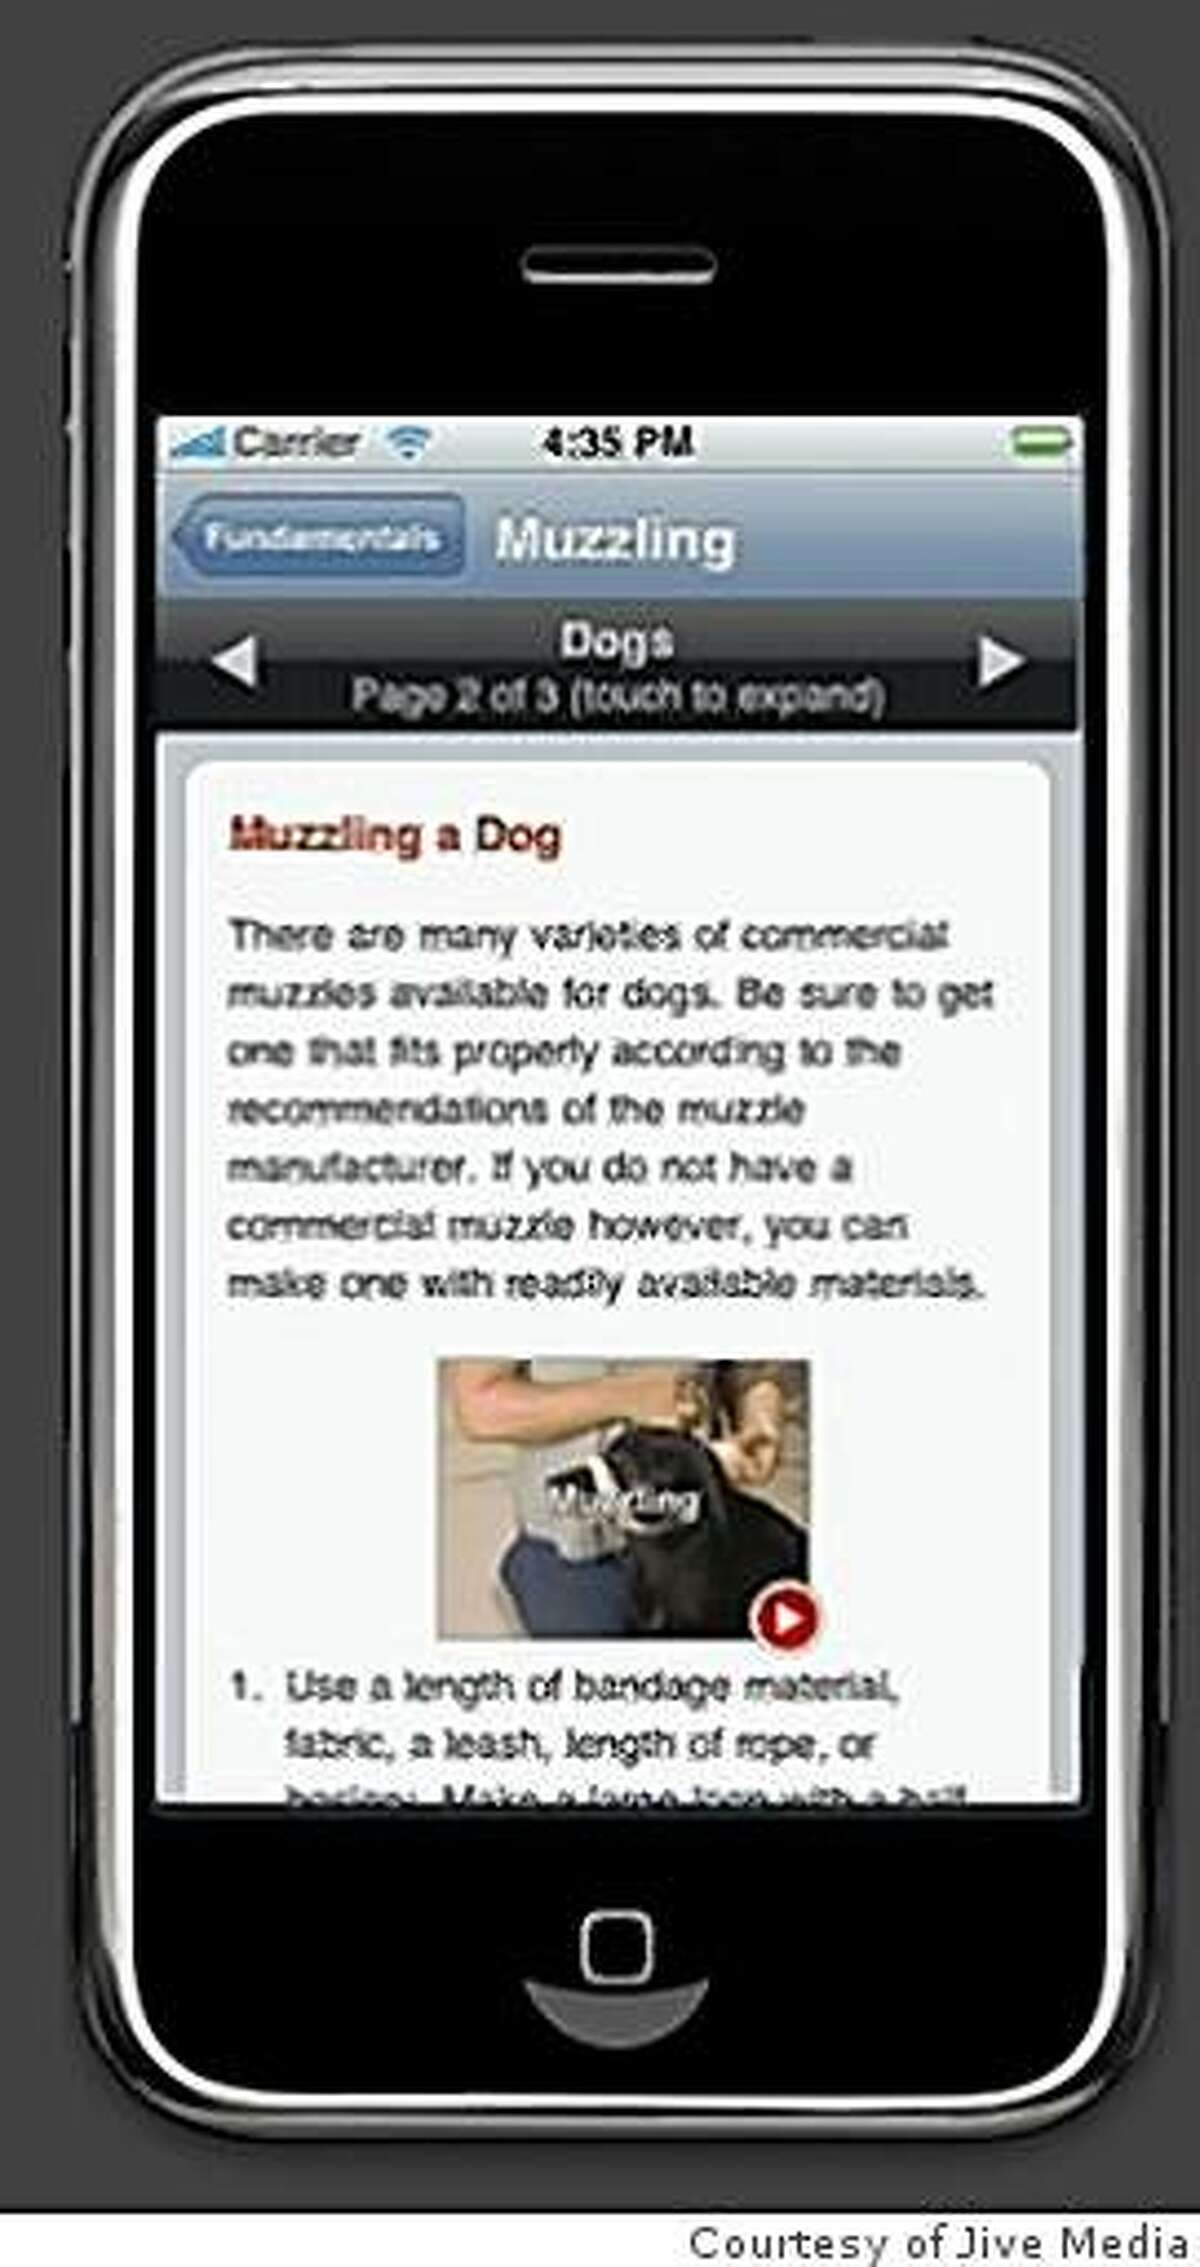 Jive Media's Pet First Aid iPhone app includes short videos on how to check a pet's vital signs, how to improvise a muzzle, and more.